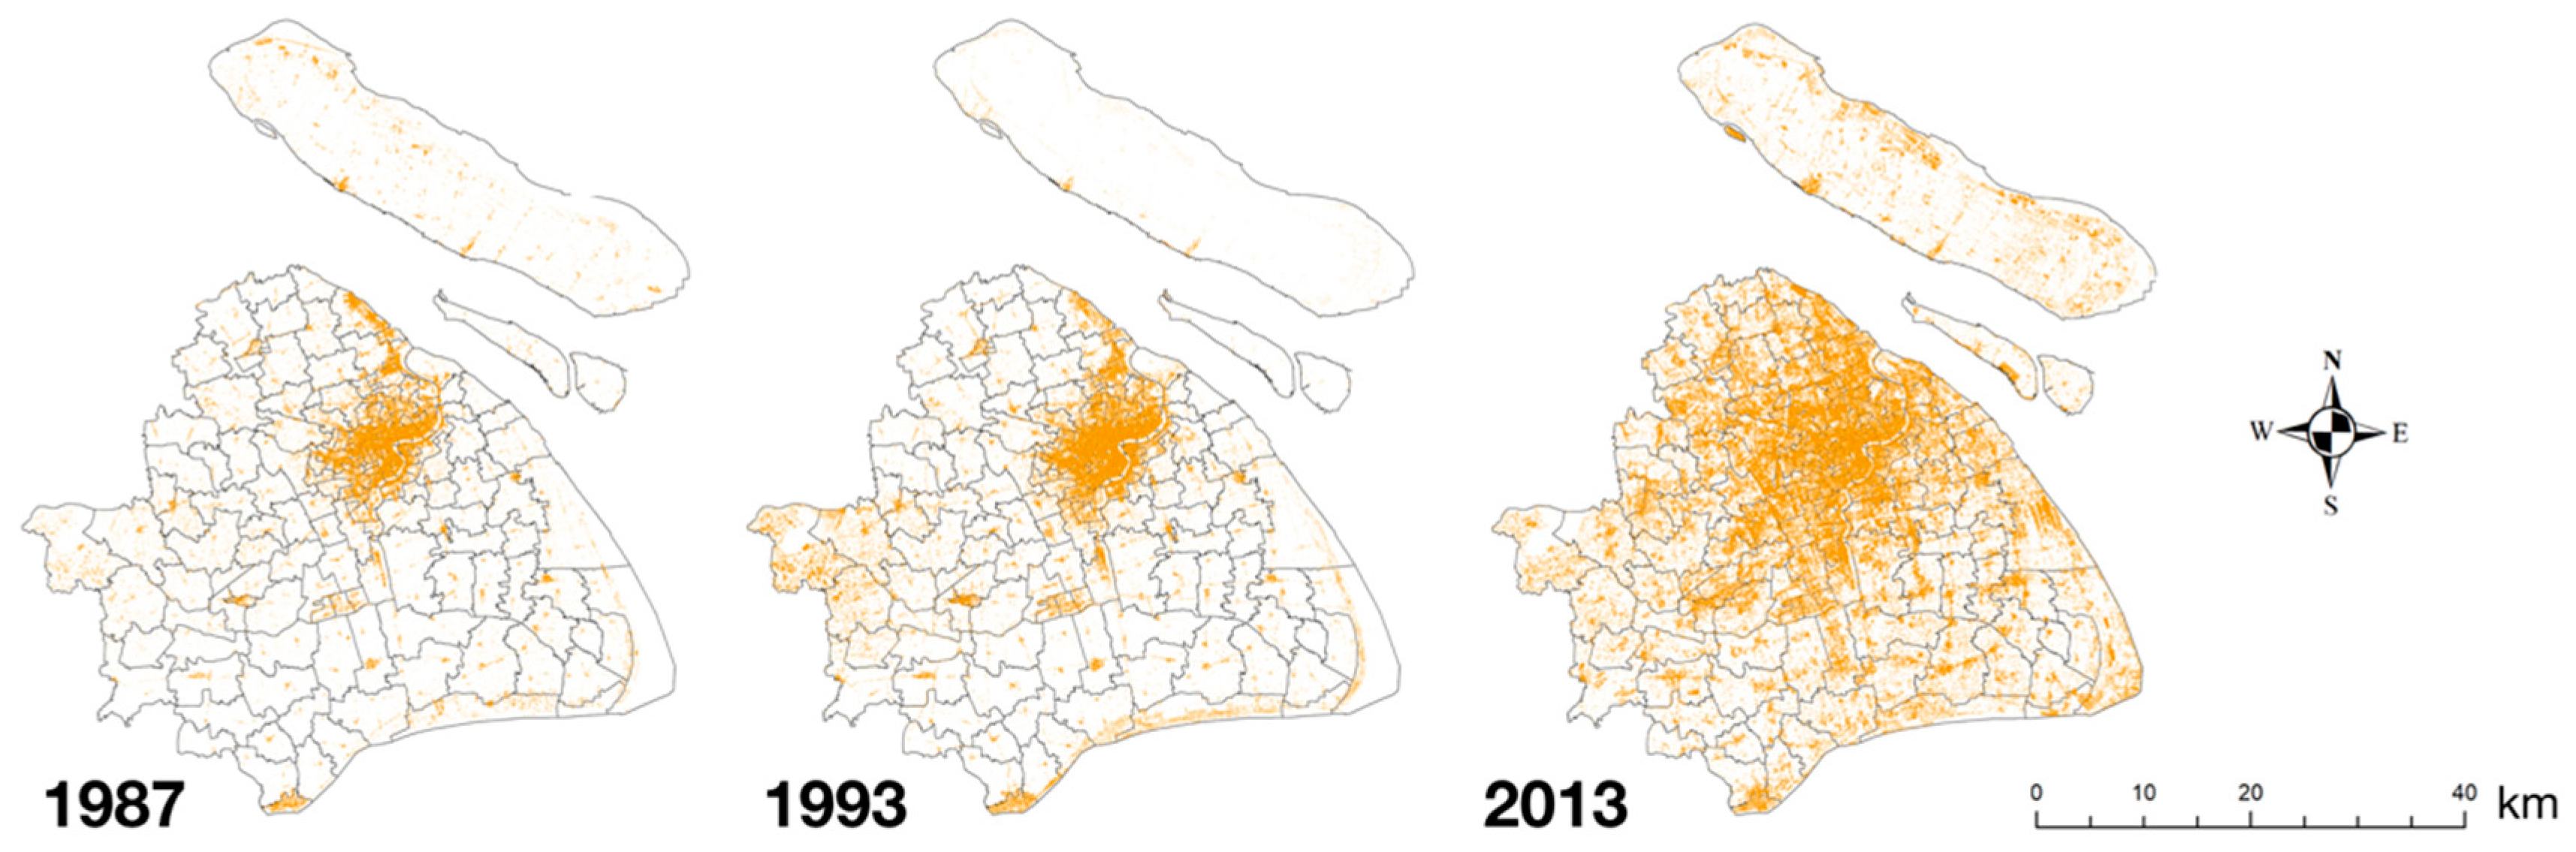 Sustainability | Free Full-Text | Spatial Assessment of Urban